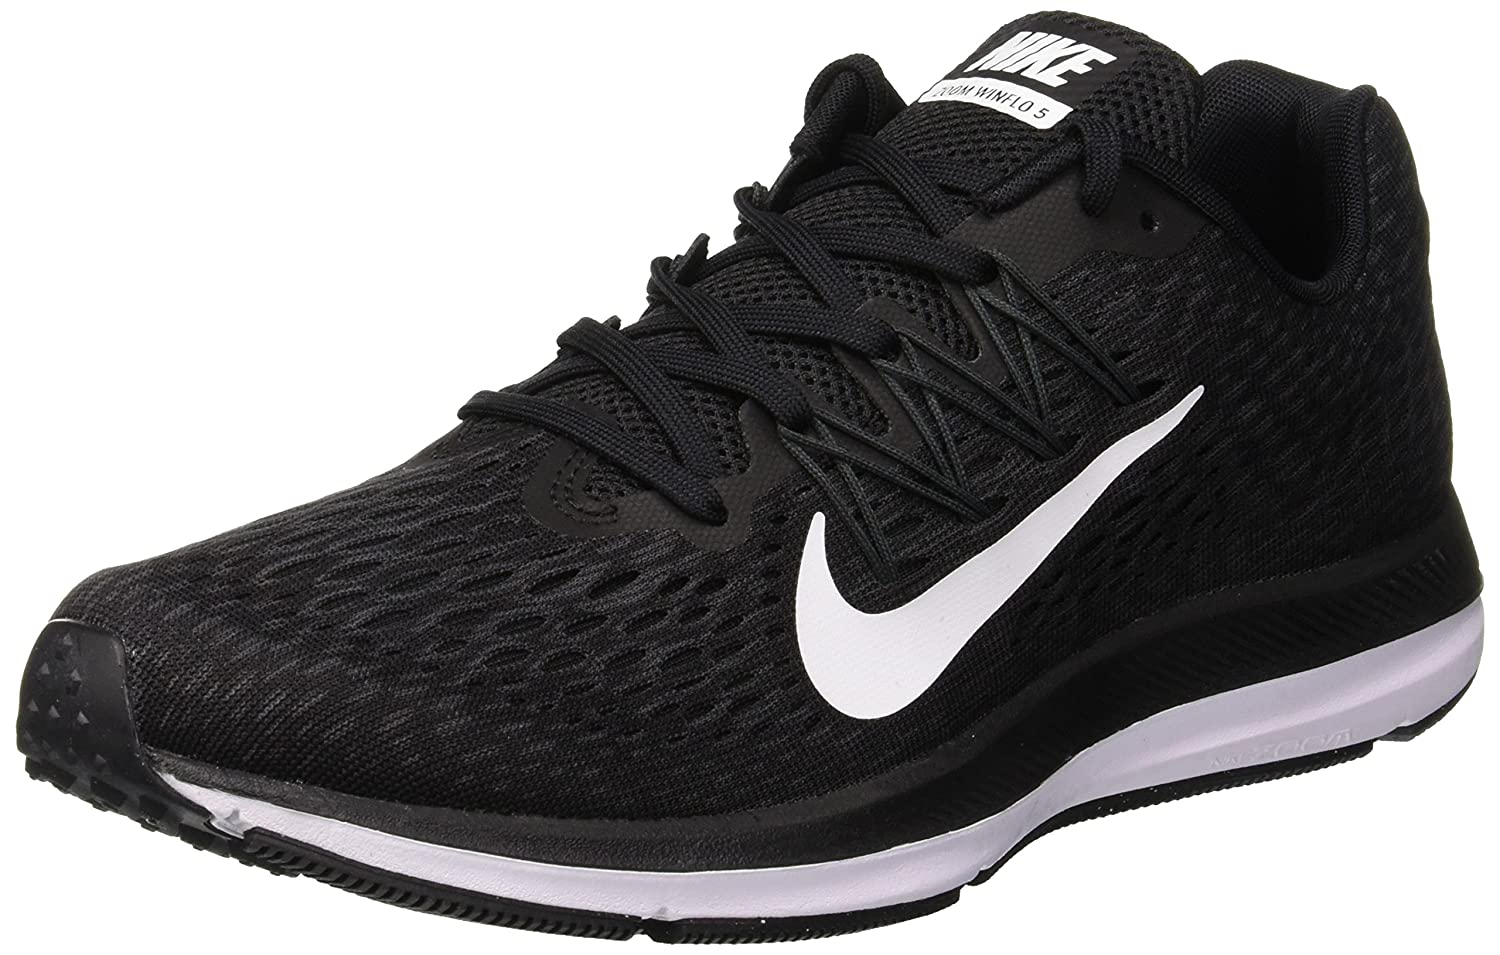 competitive price c498e 42631 Nike Men's Zoom Winflo 5 Running Shoes